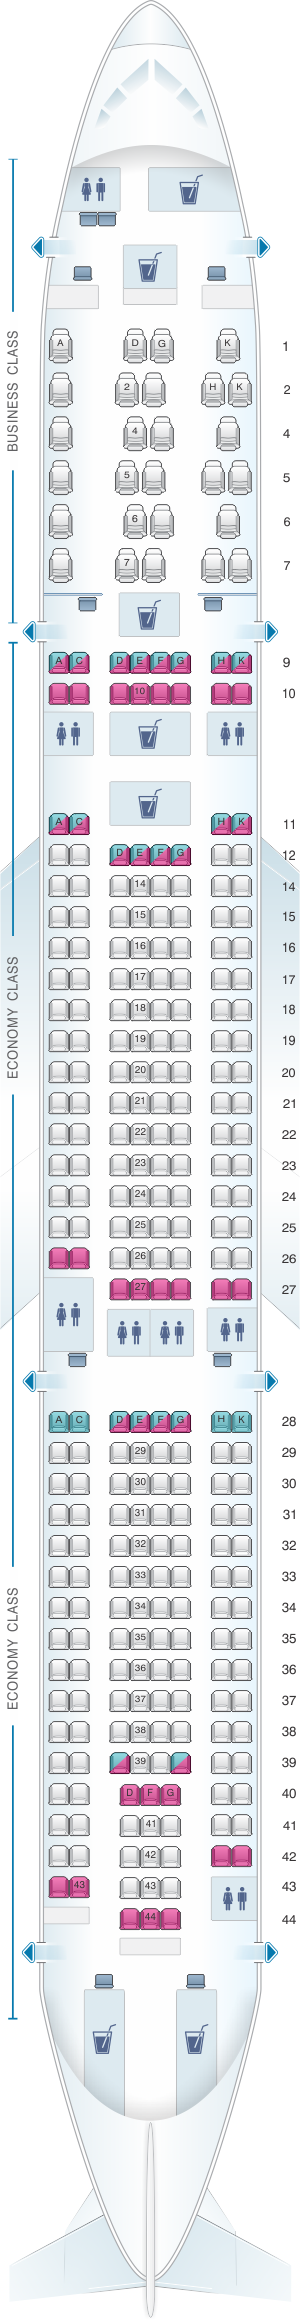 Seat map for Malaysia Airlines Airbus A330 300 Config.2